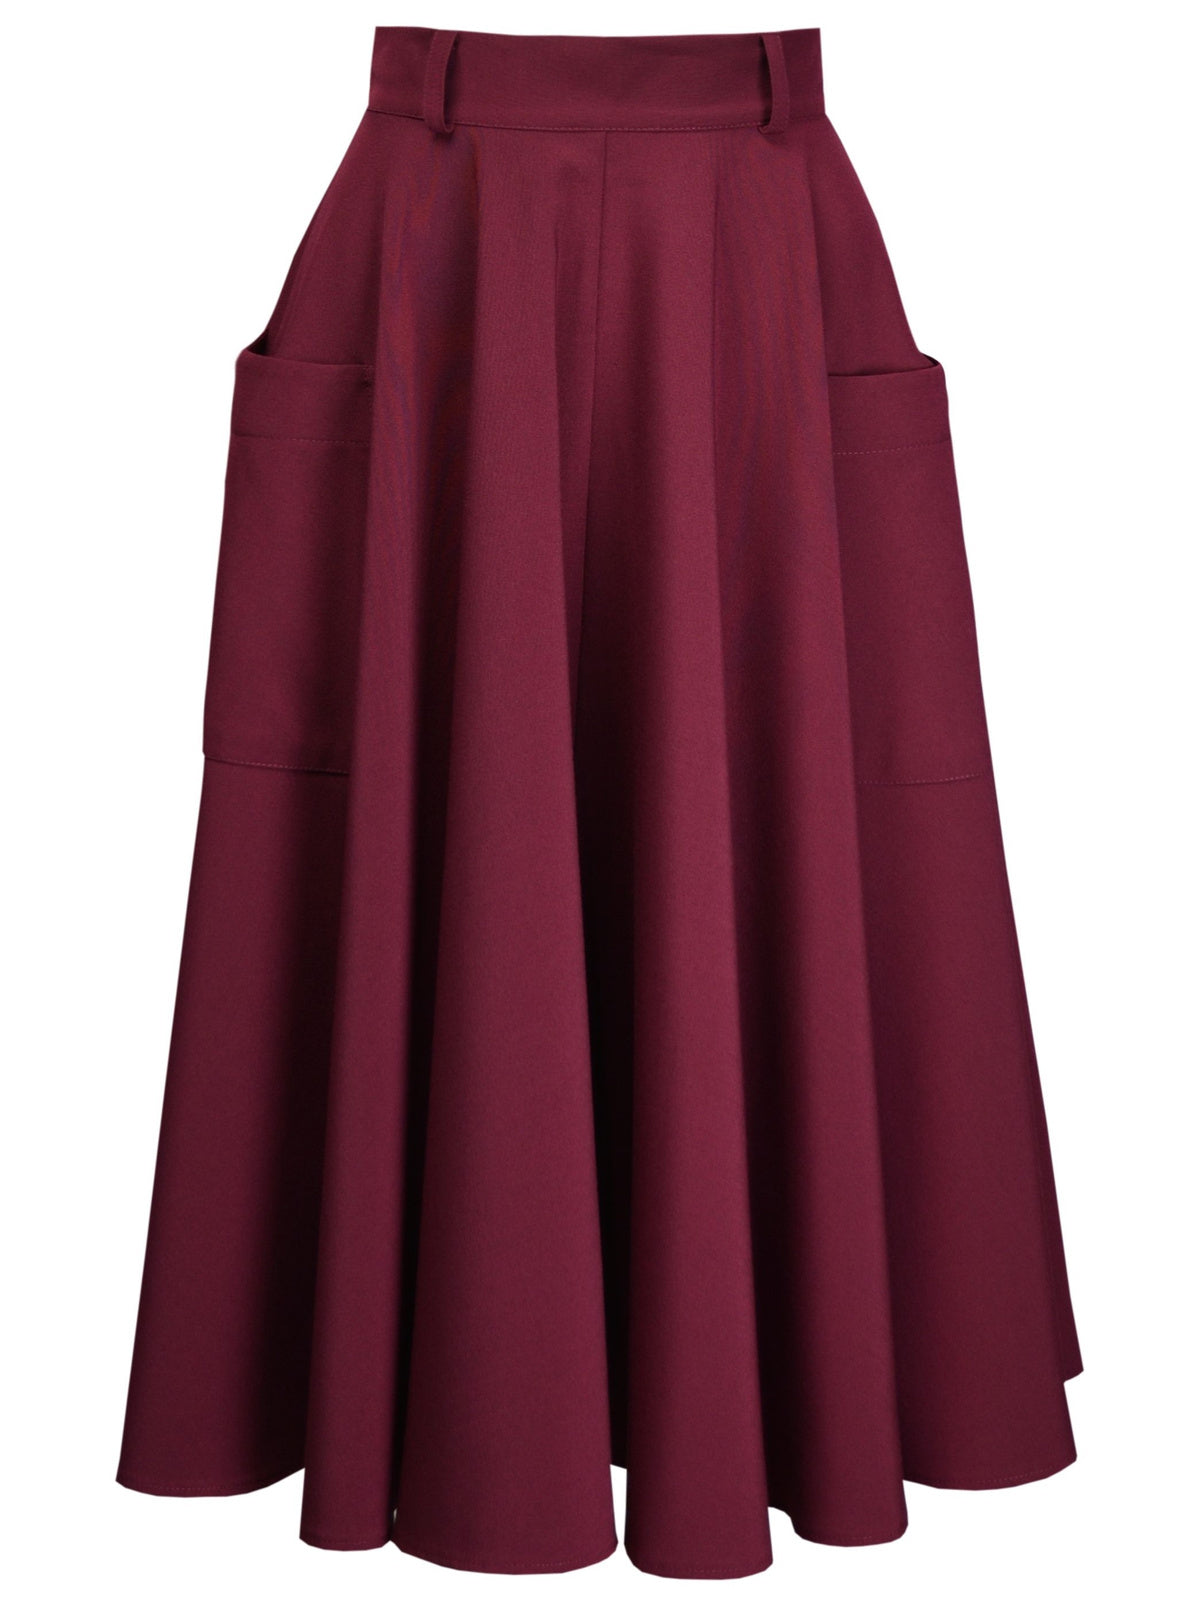 Retro Circle Skirt - Wine